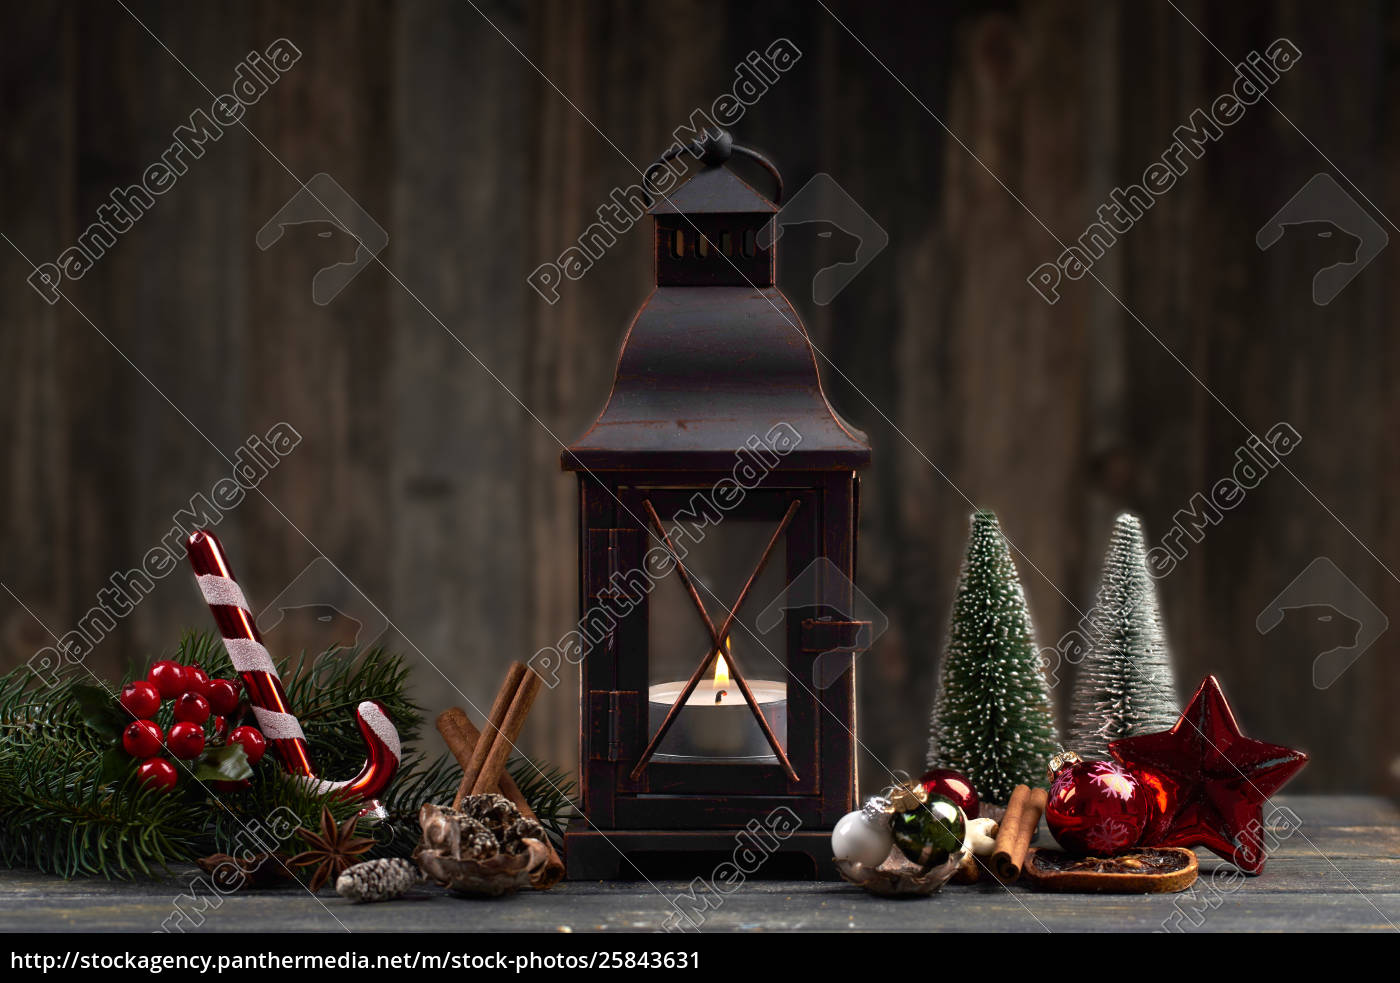 Dark Christmas.Stock Photo 25843631 Wooden Christmas Lamp With Festive Decoration On Dark